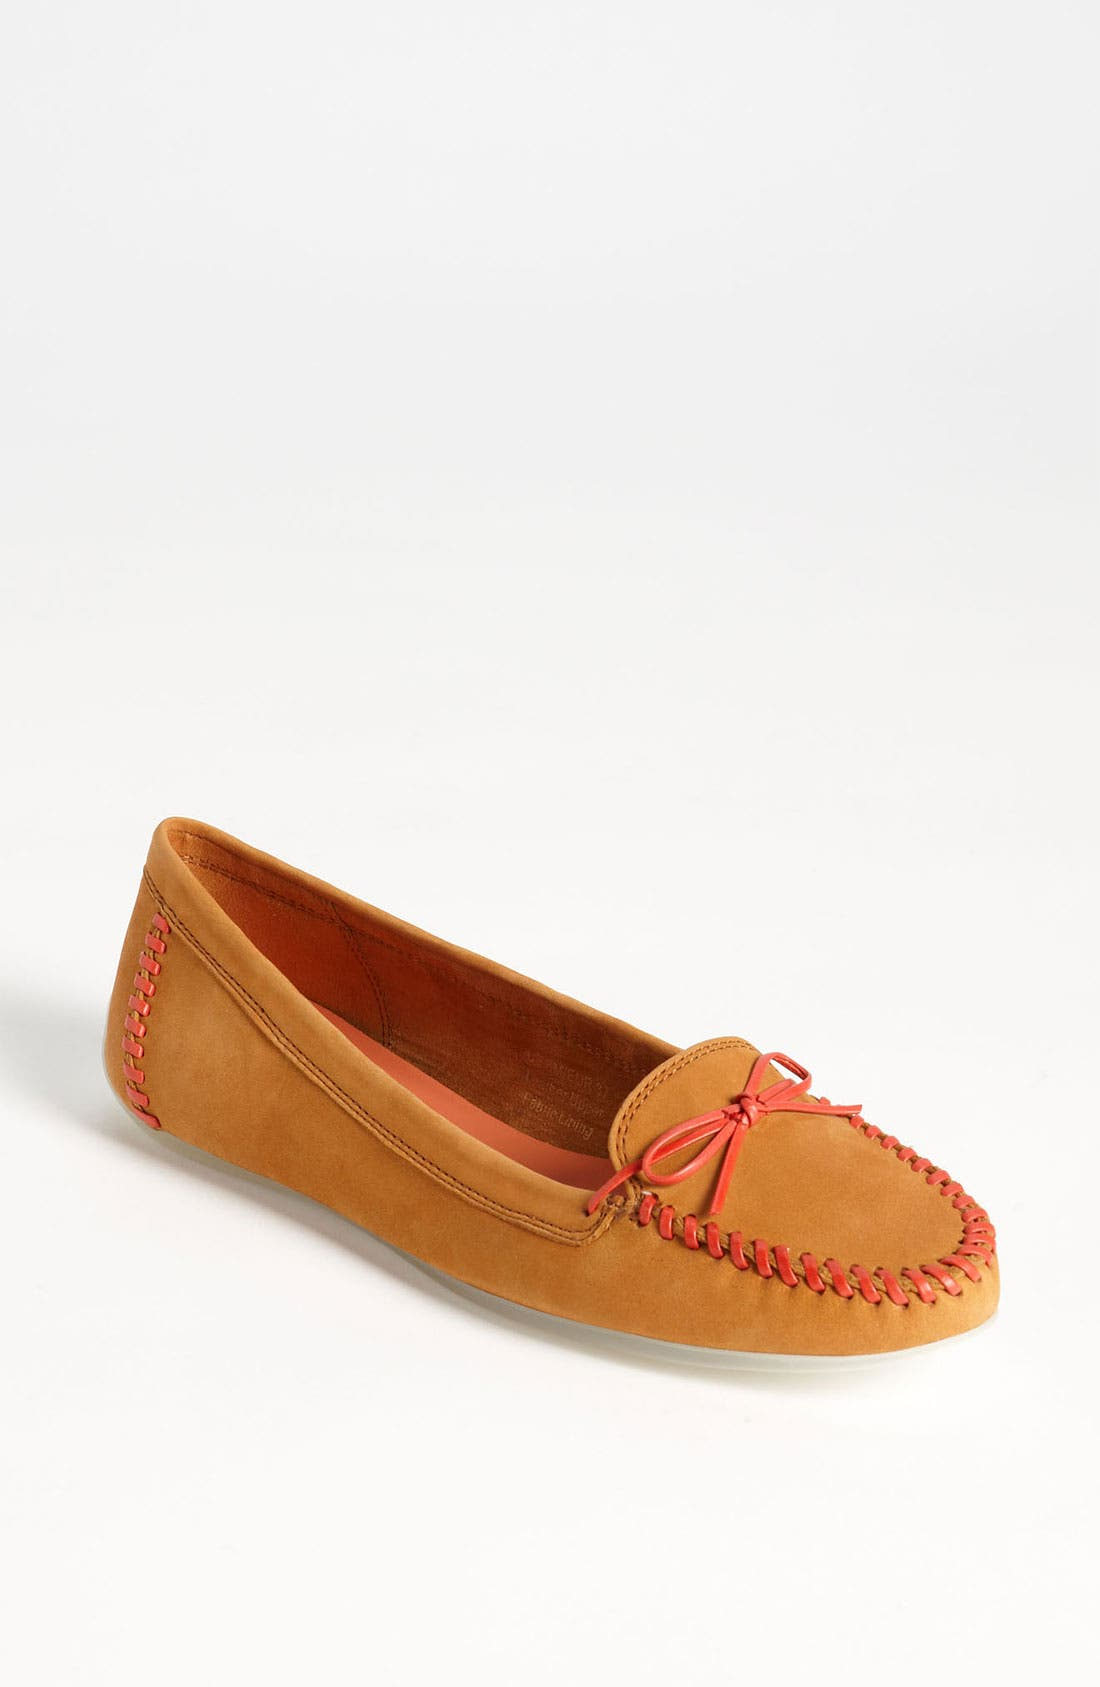 Alternate Image 1 Selected - Via Spiga 'Kate' Loafer